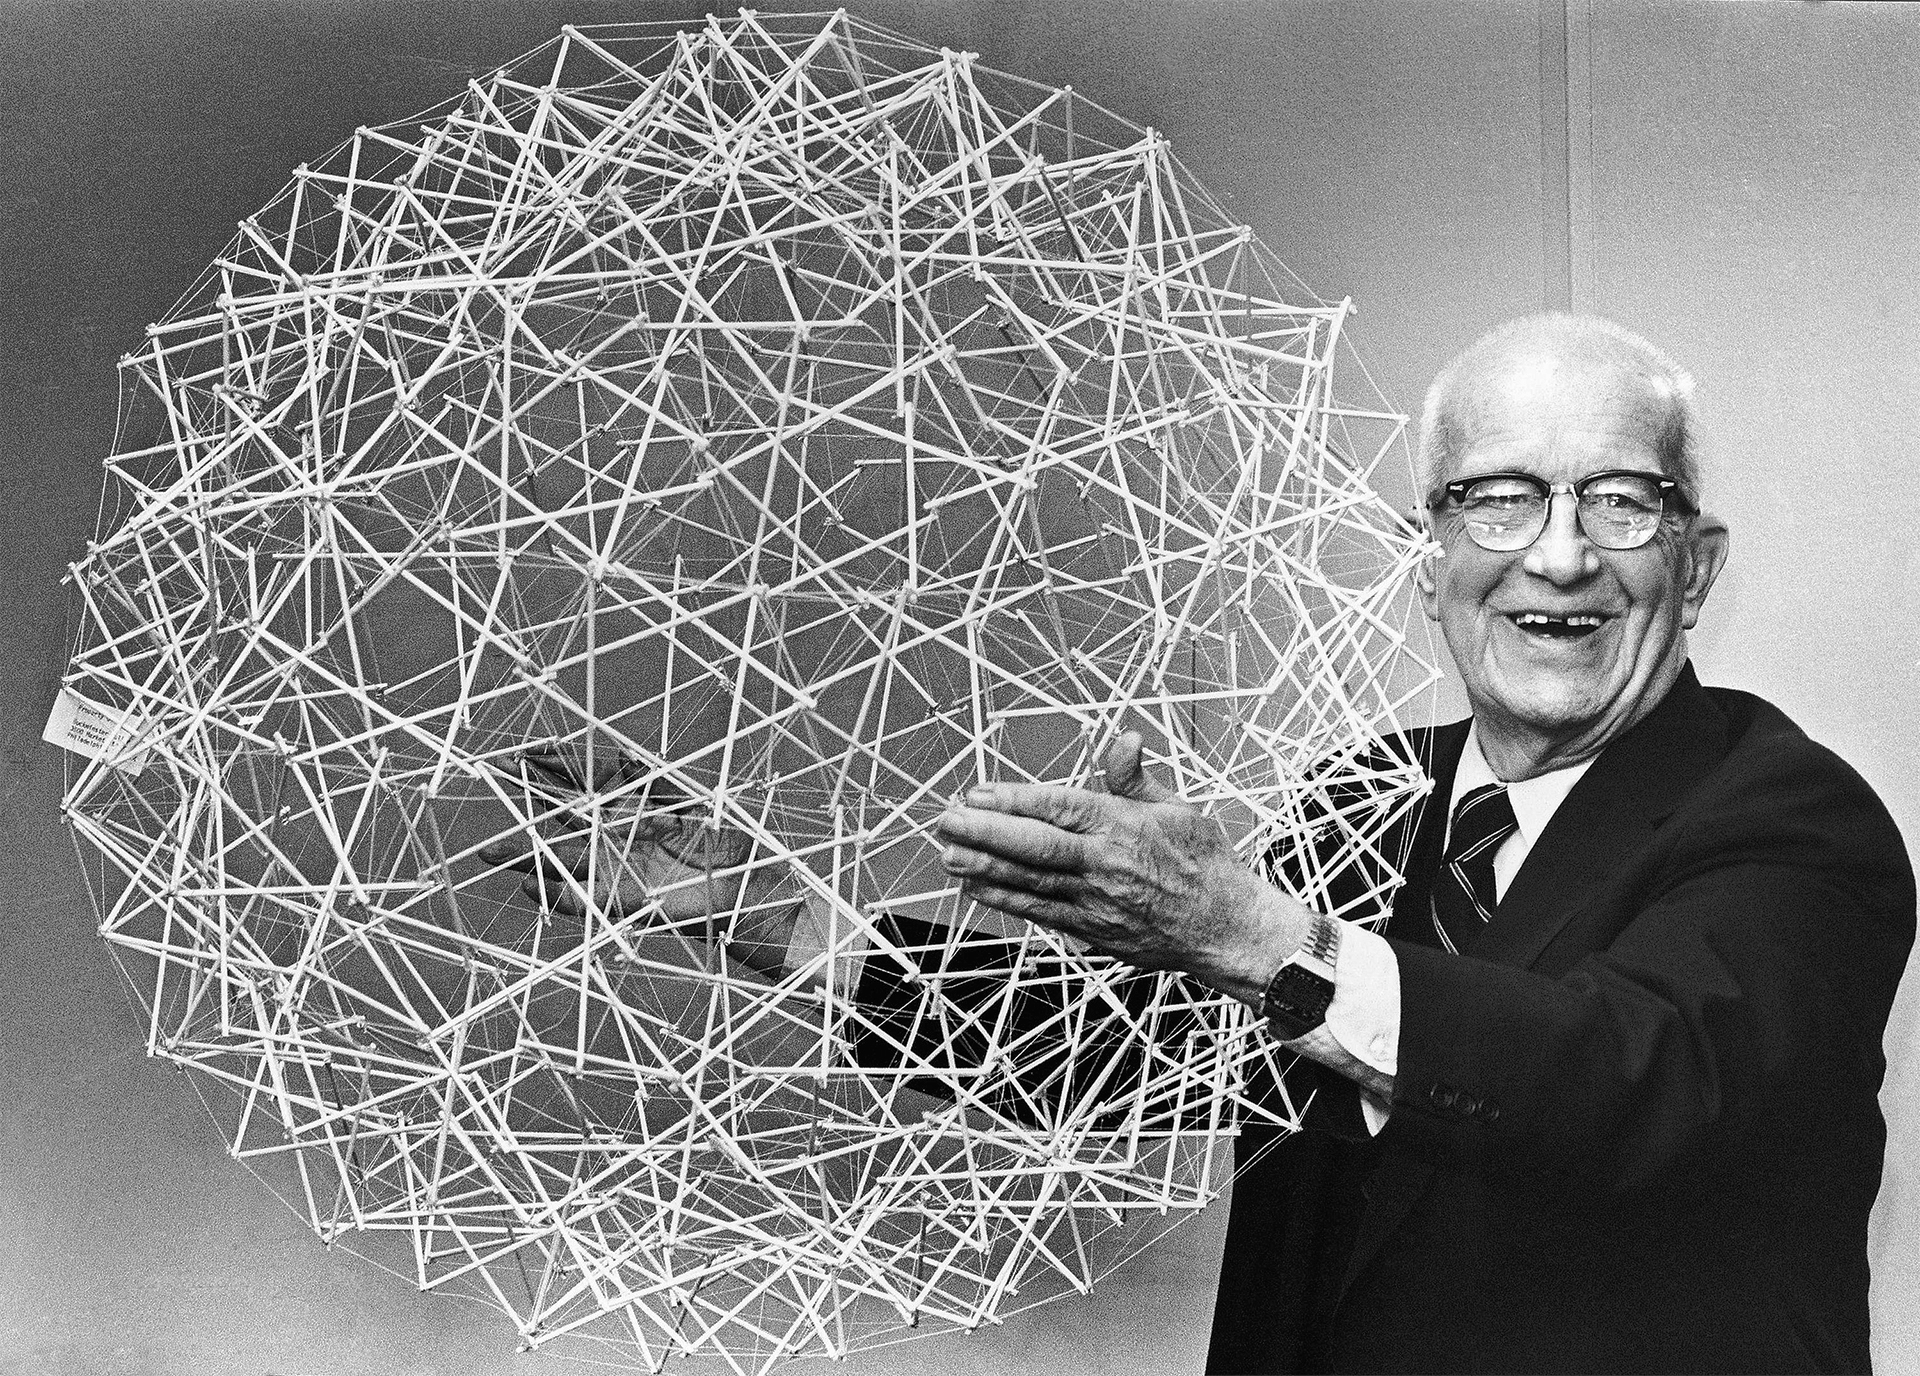 """We are called to be the architects of the future, not its victims."" -R. Buckminster Fuller"